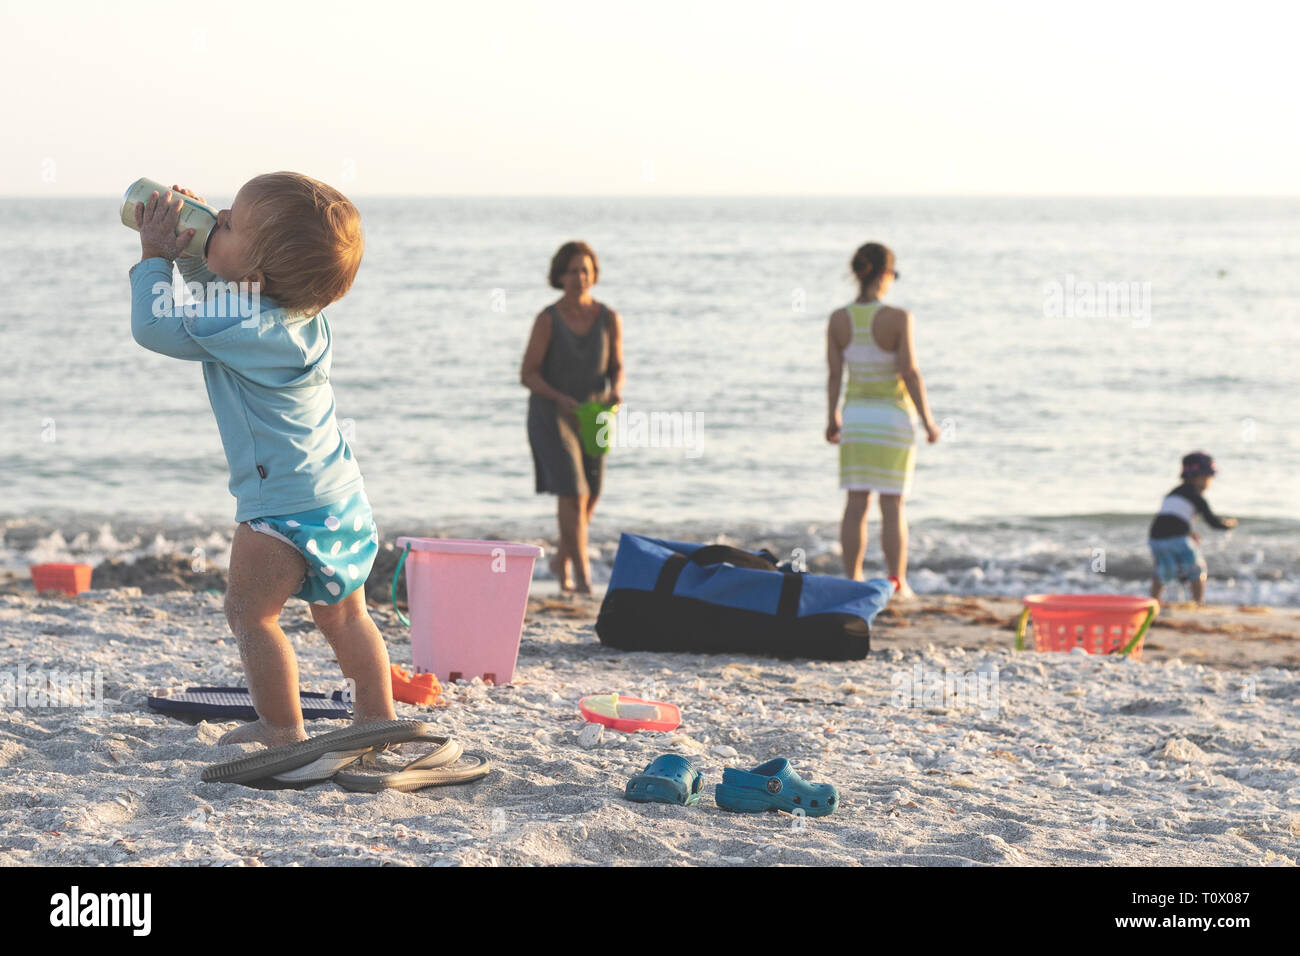 Family on the beach with children in the background drinking - Stock Image